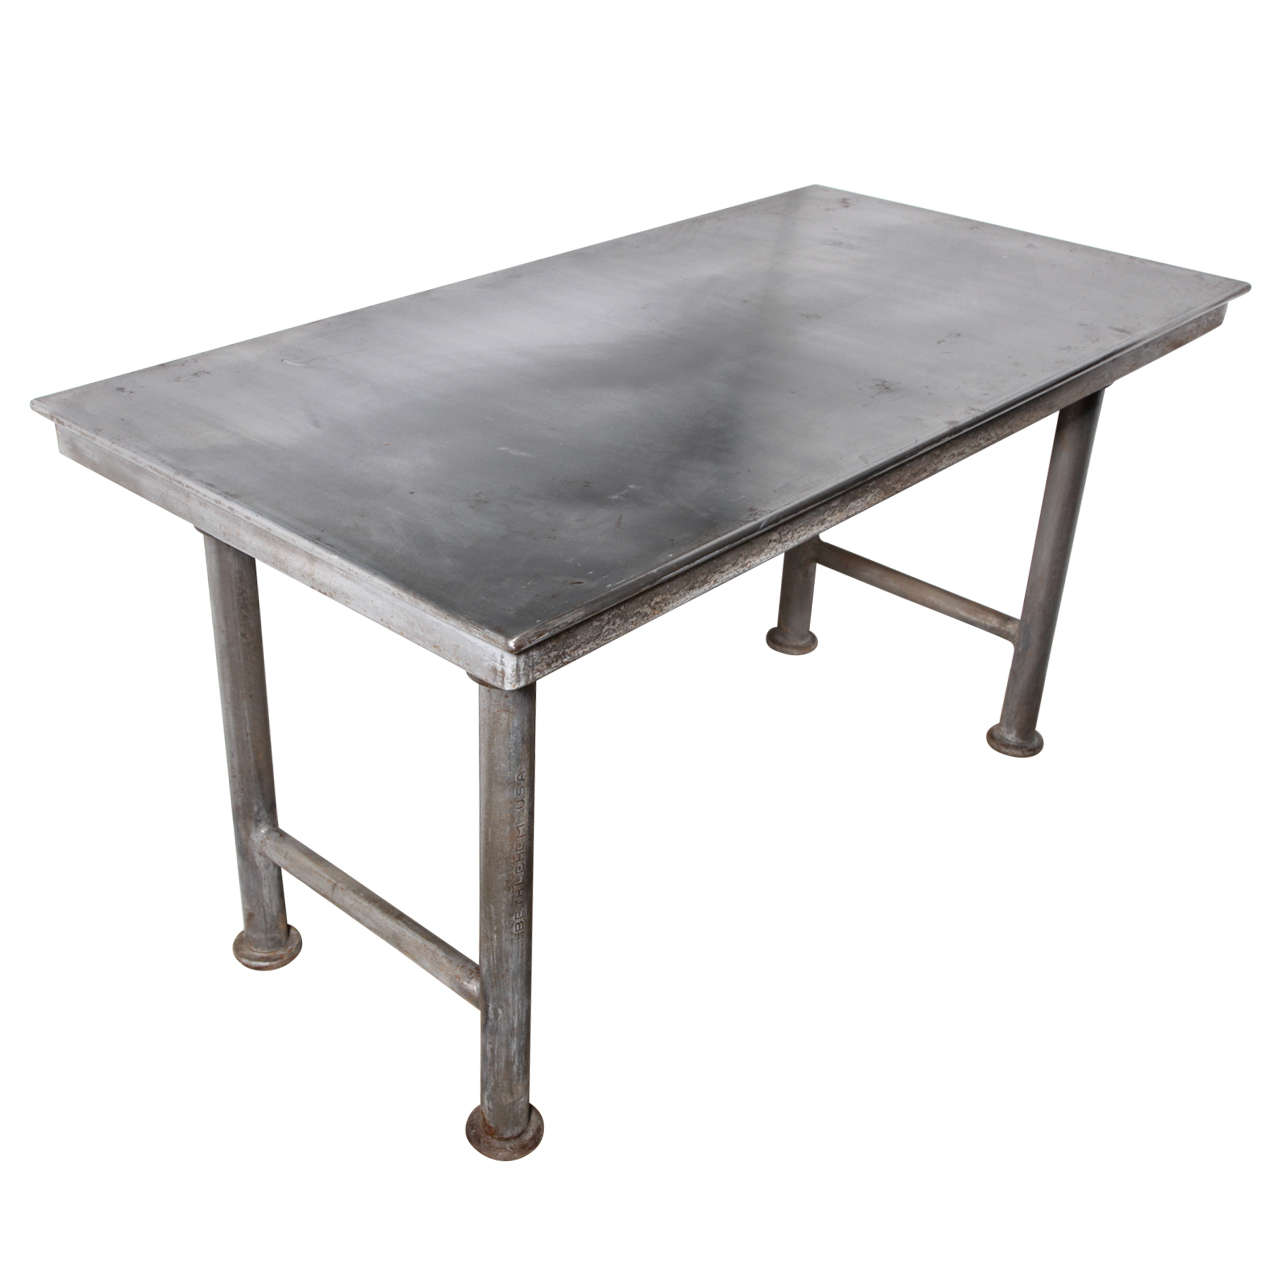 Quot Reading Quot Industrial Work Table At 1stdibs